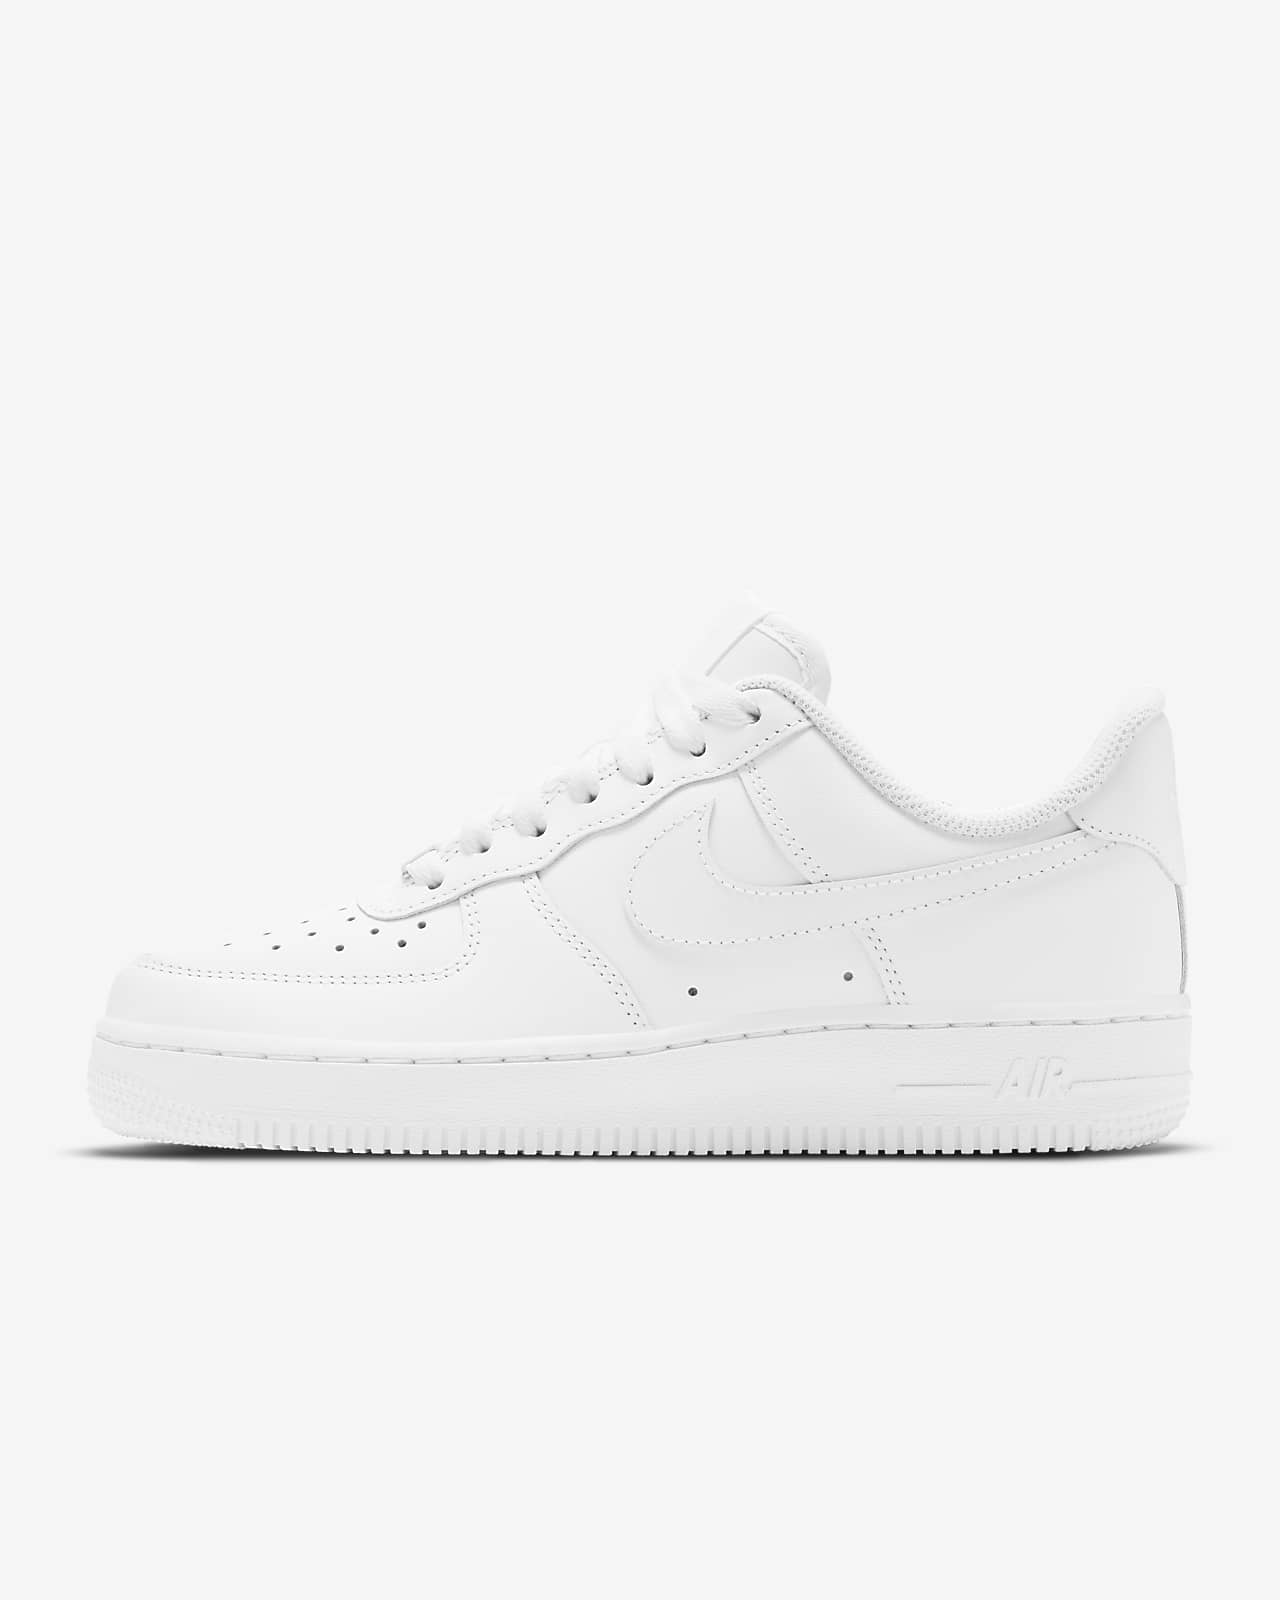 scarpe nike air force one 60% di sconto trevisomtb.it